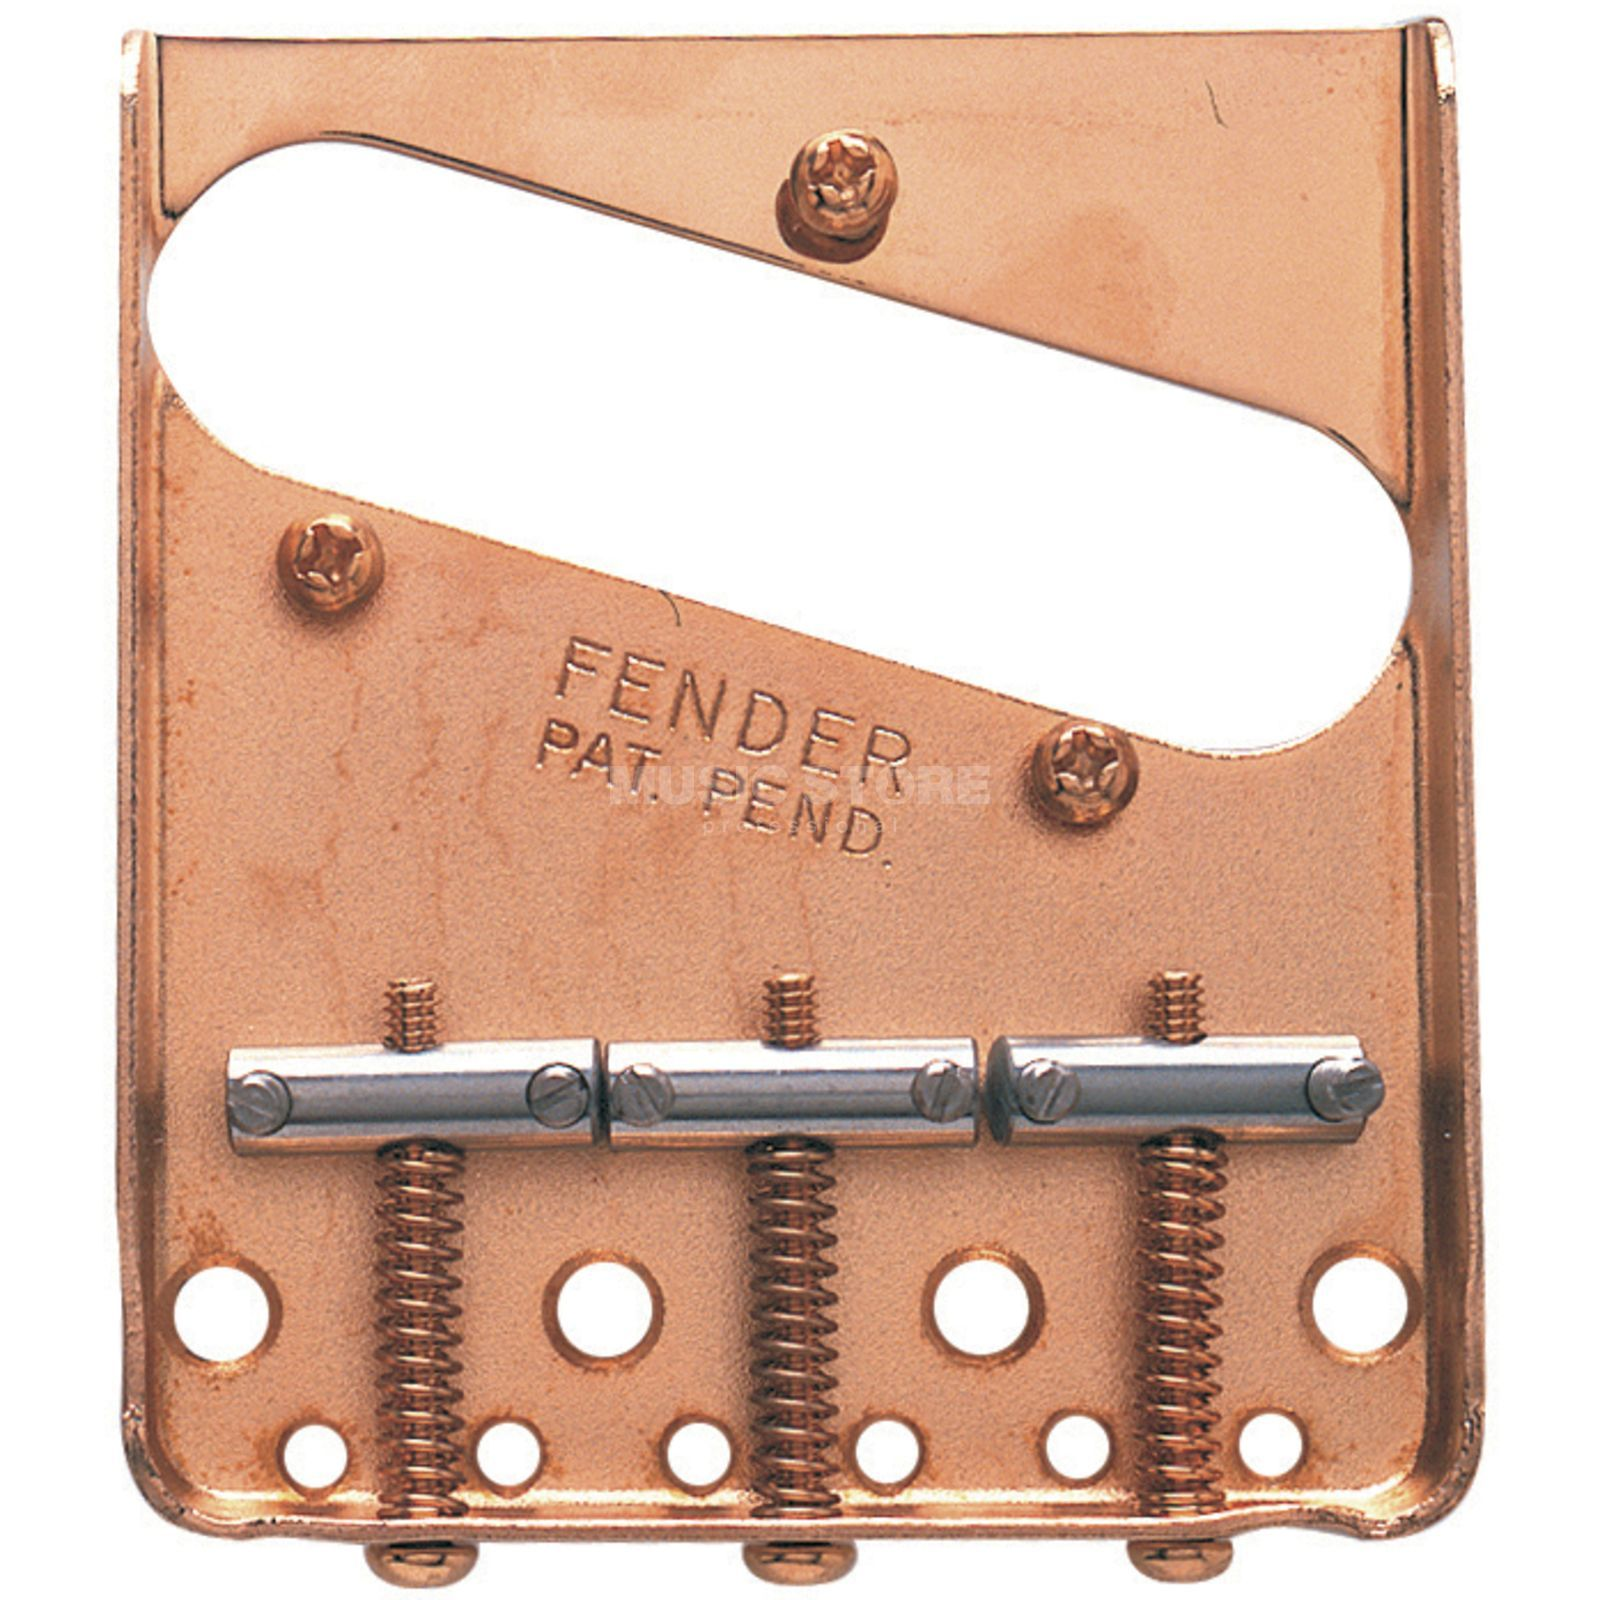 Fender Tele Bridge Set Vintage Gold, 3 Chrom-Reiter Produktbillede